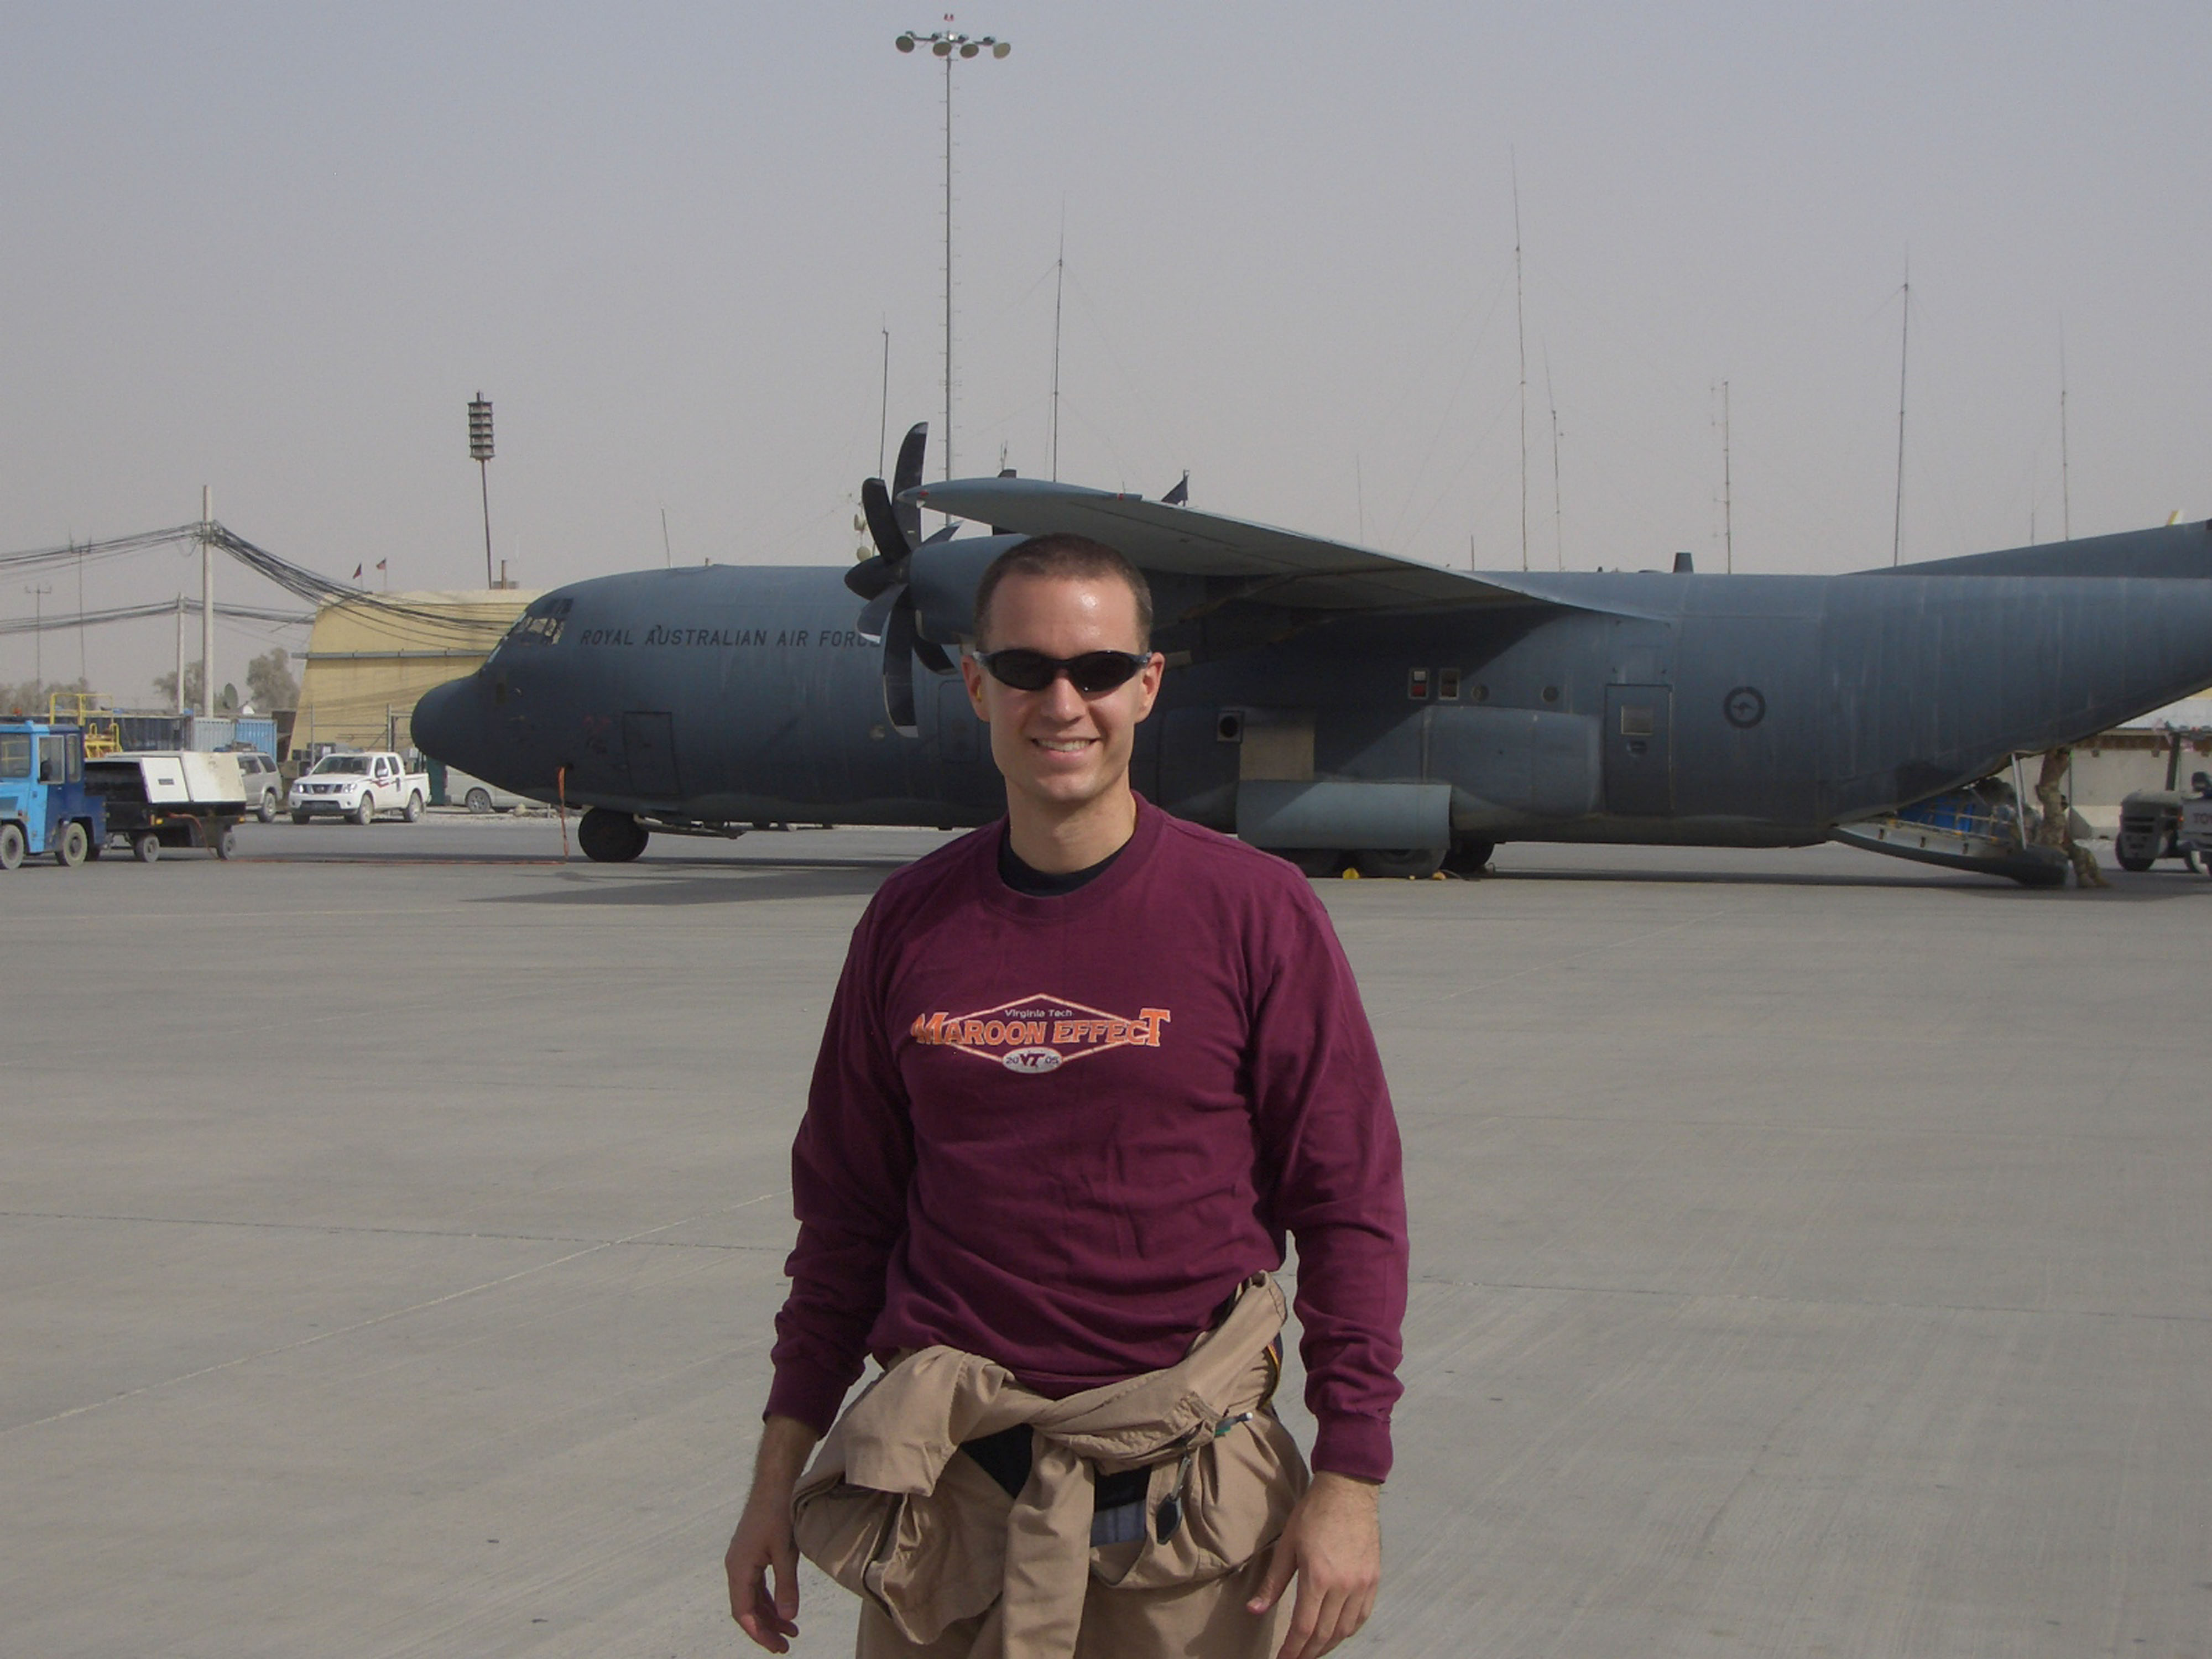 Capt. Daniel Richardson, U.S. Air Force, Virginia Tech Corps of Cadets Class of 2004